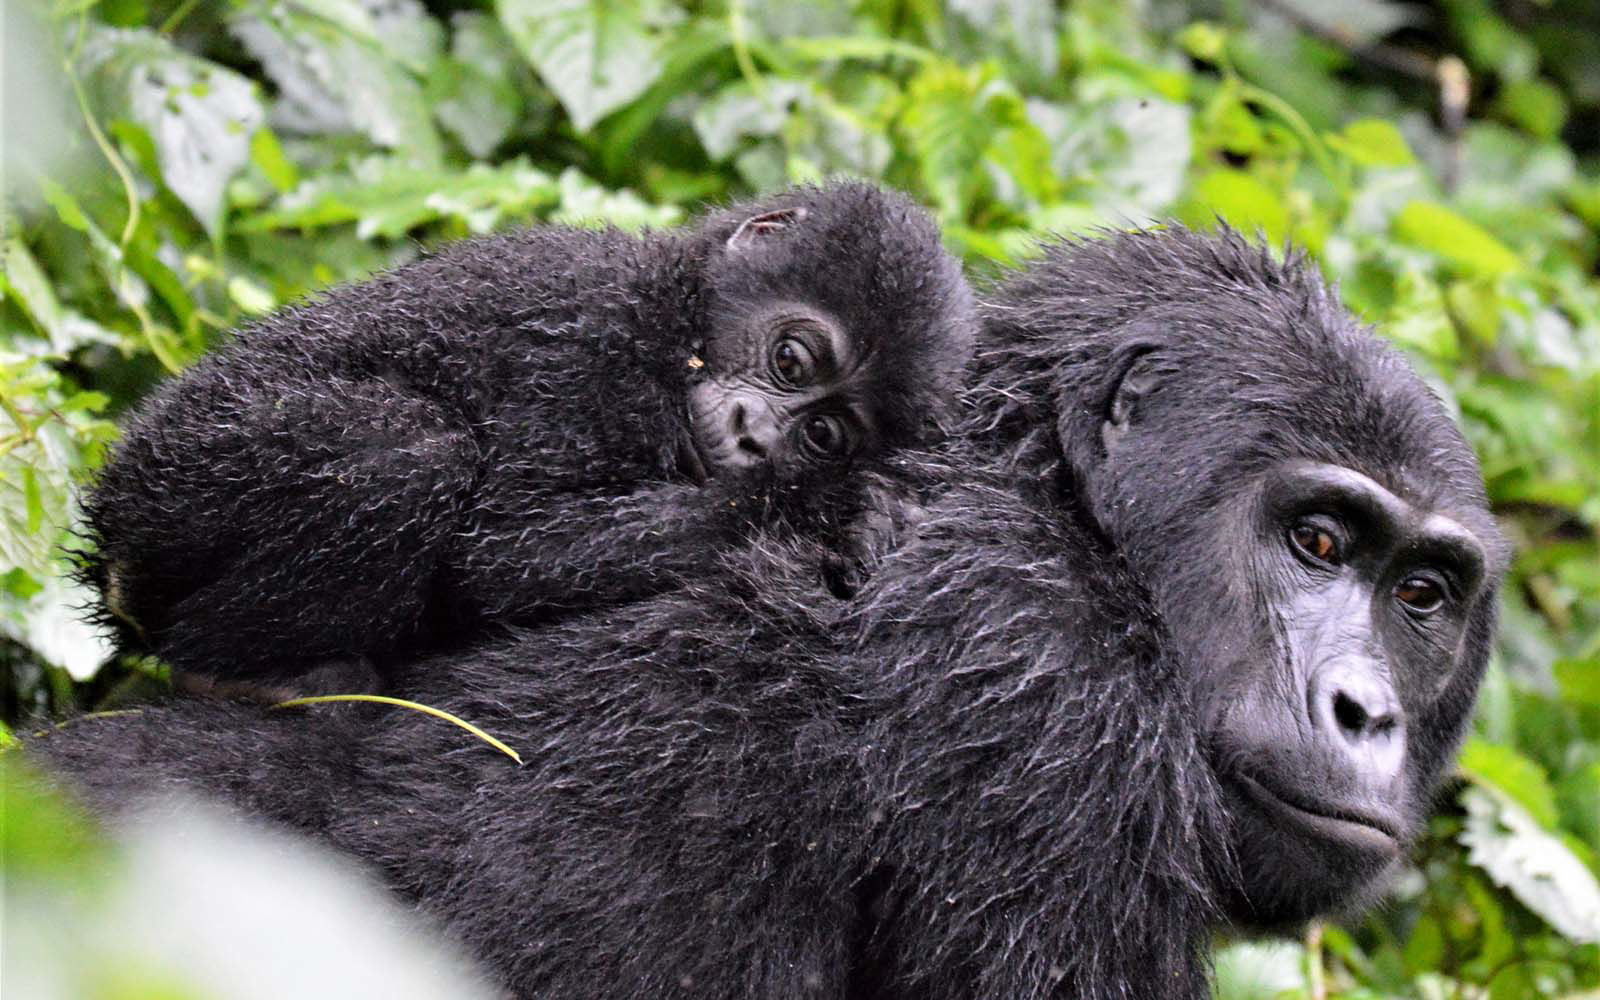 mother and with baby gorilla on her back